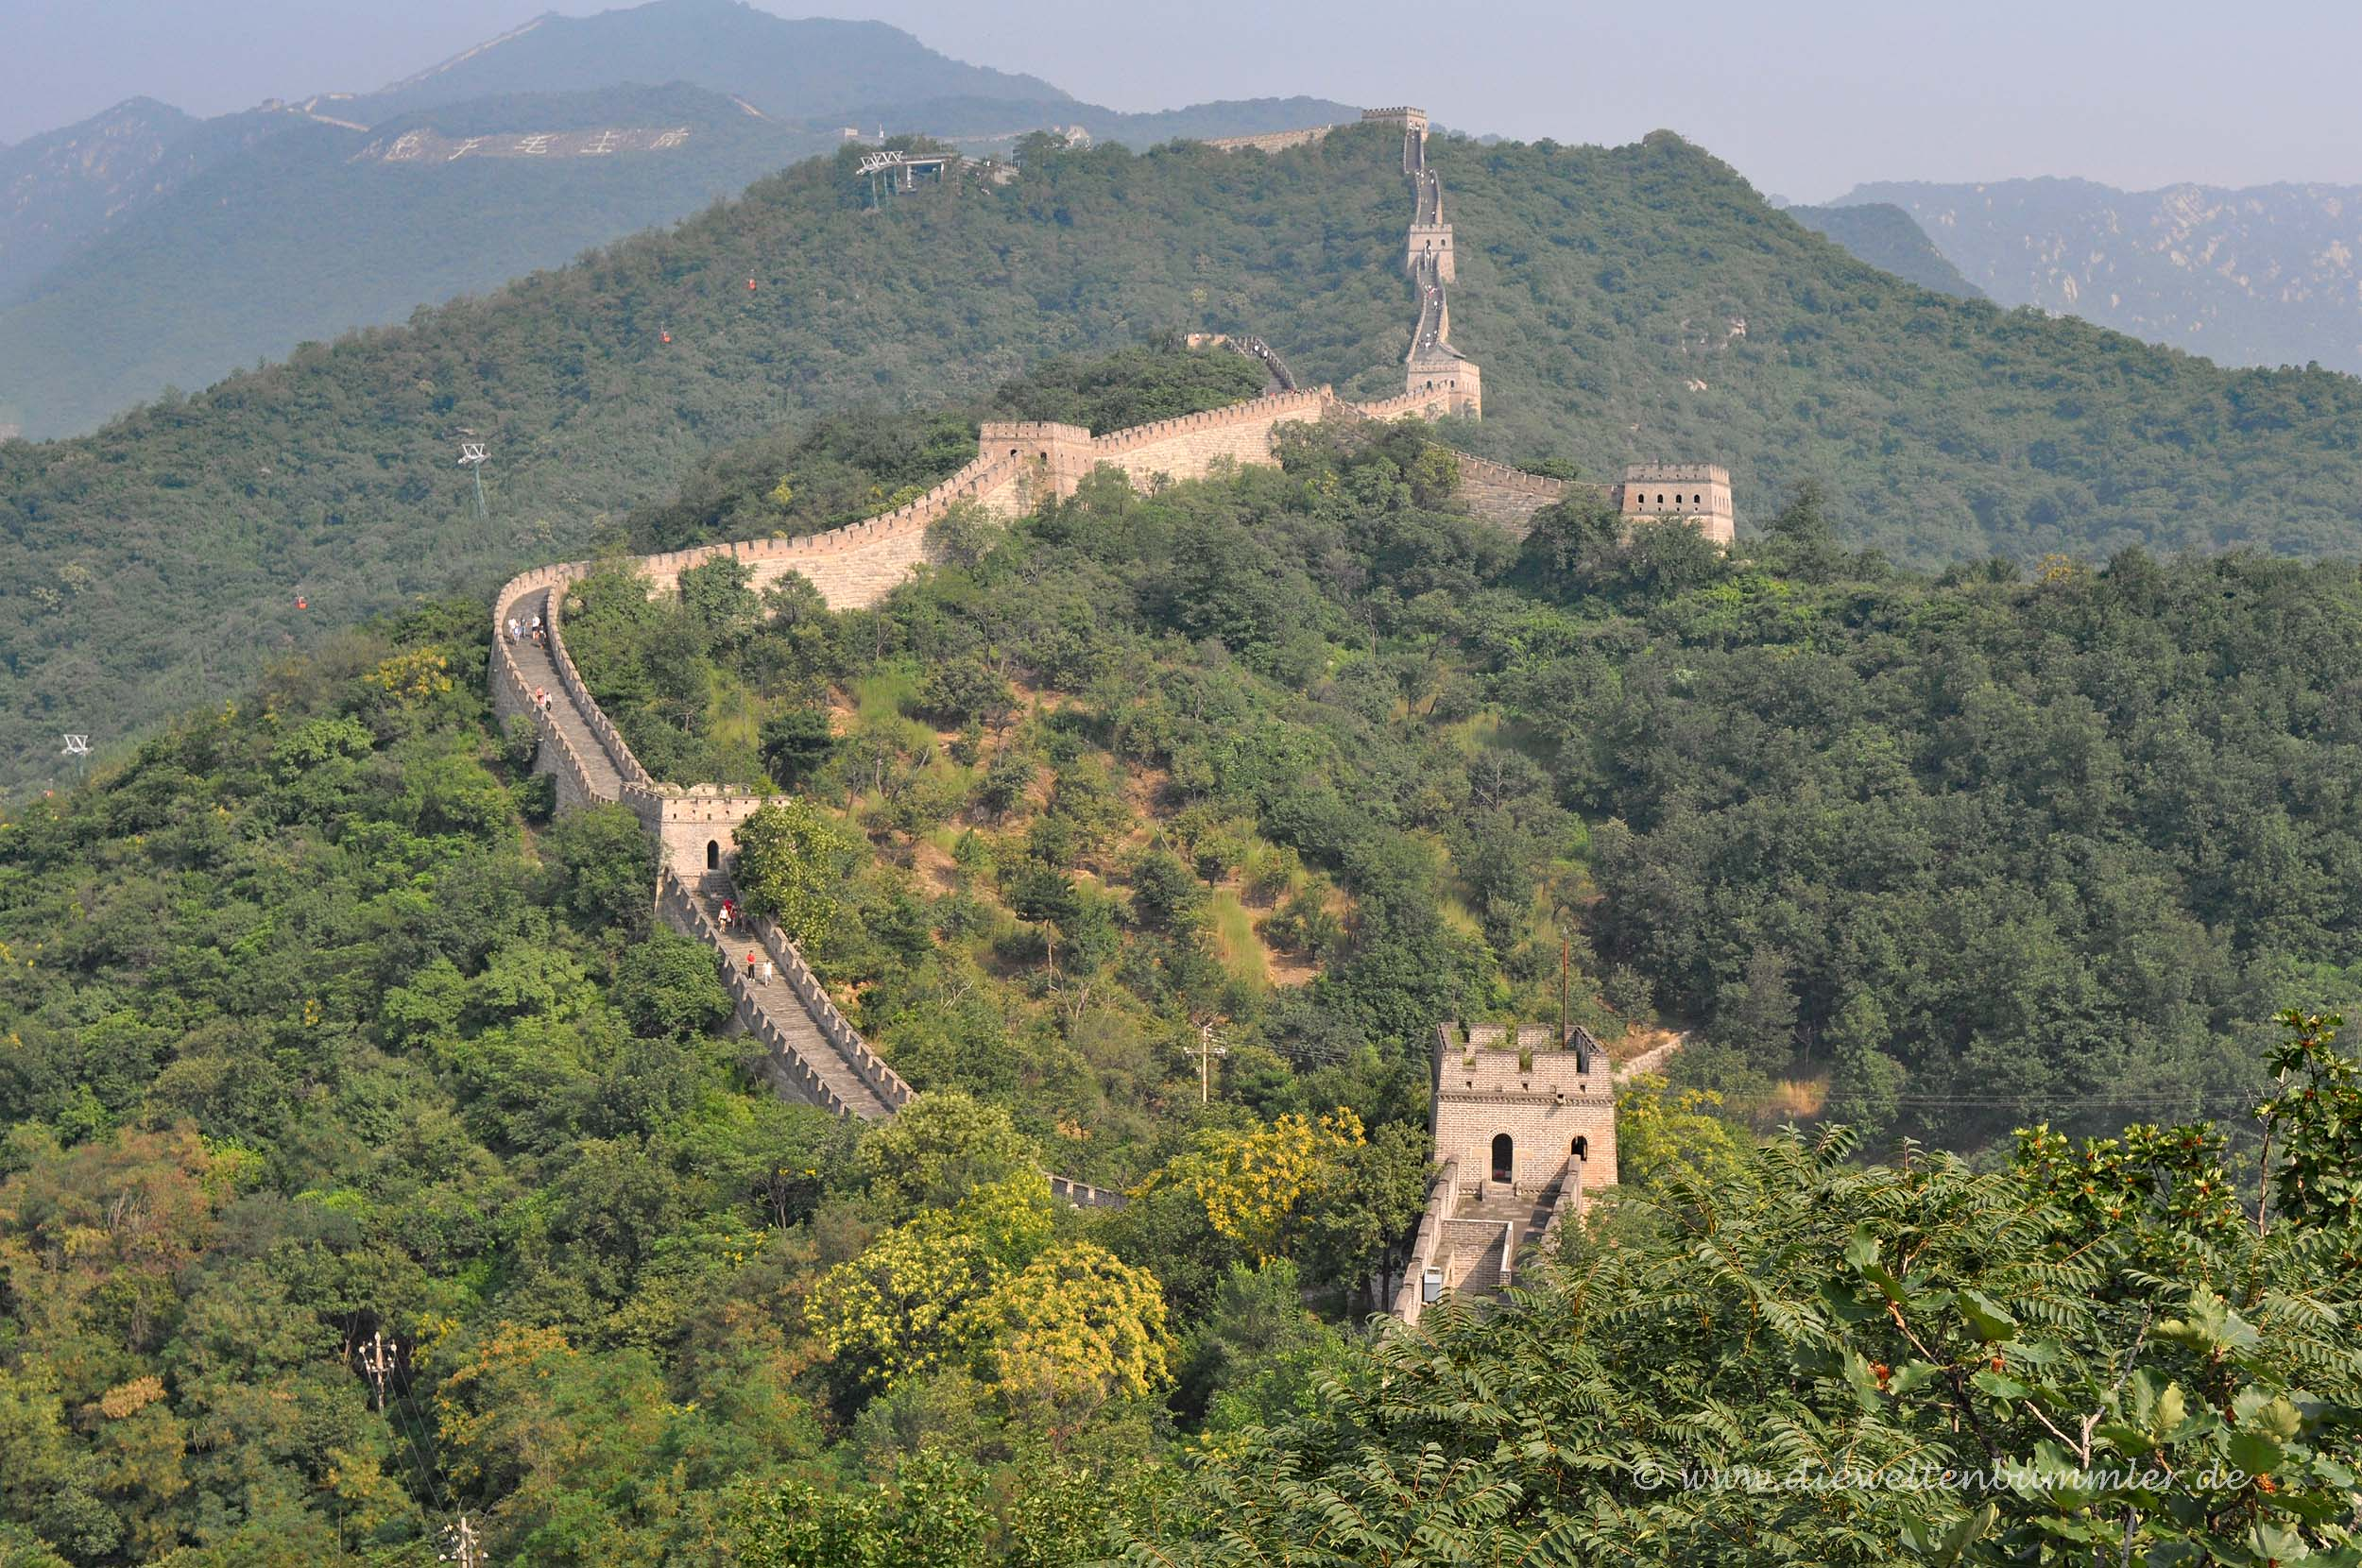 Great Wall of China in Mutianyu